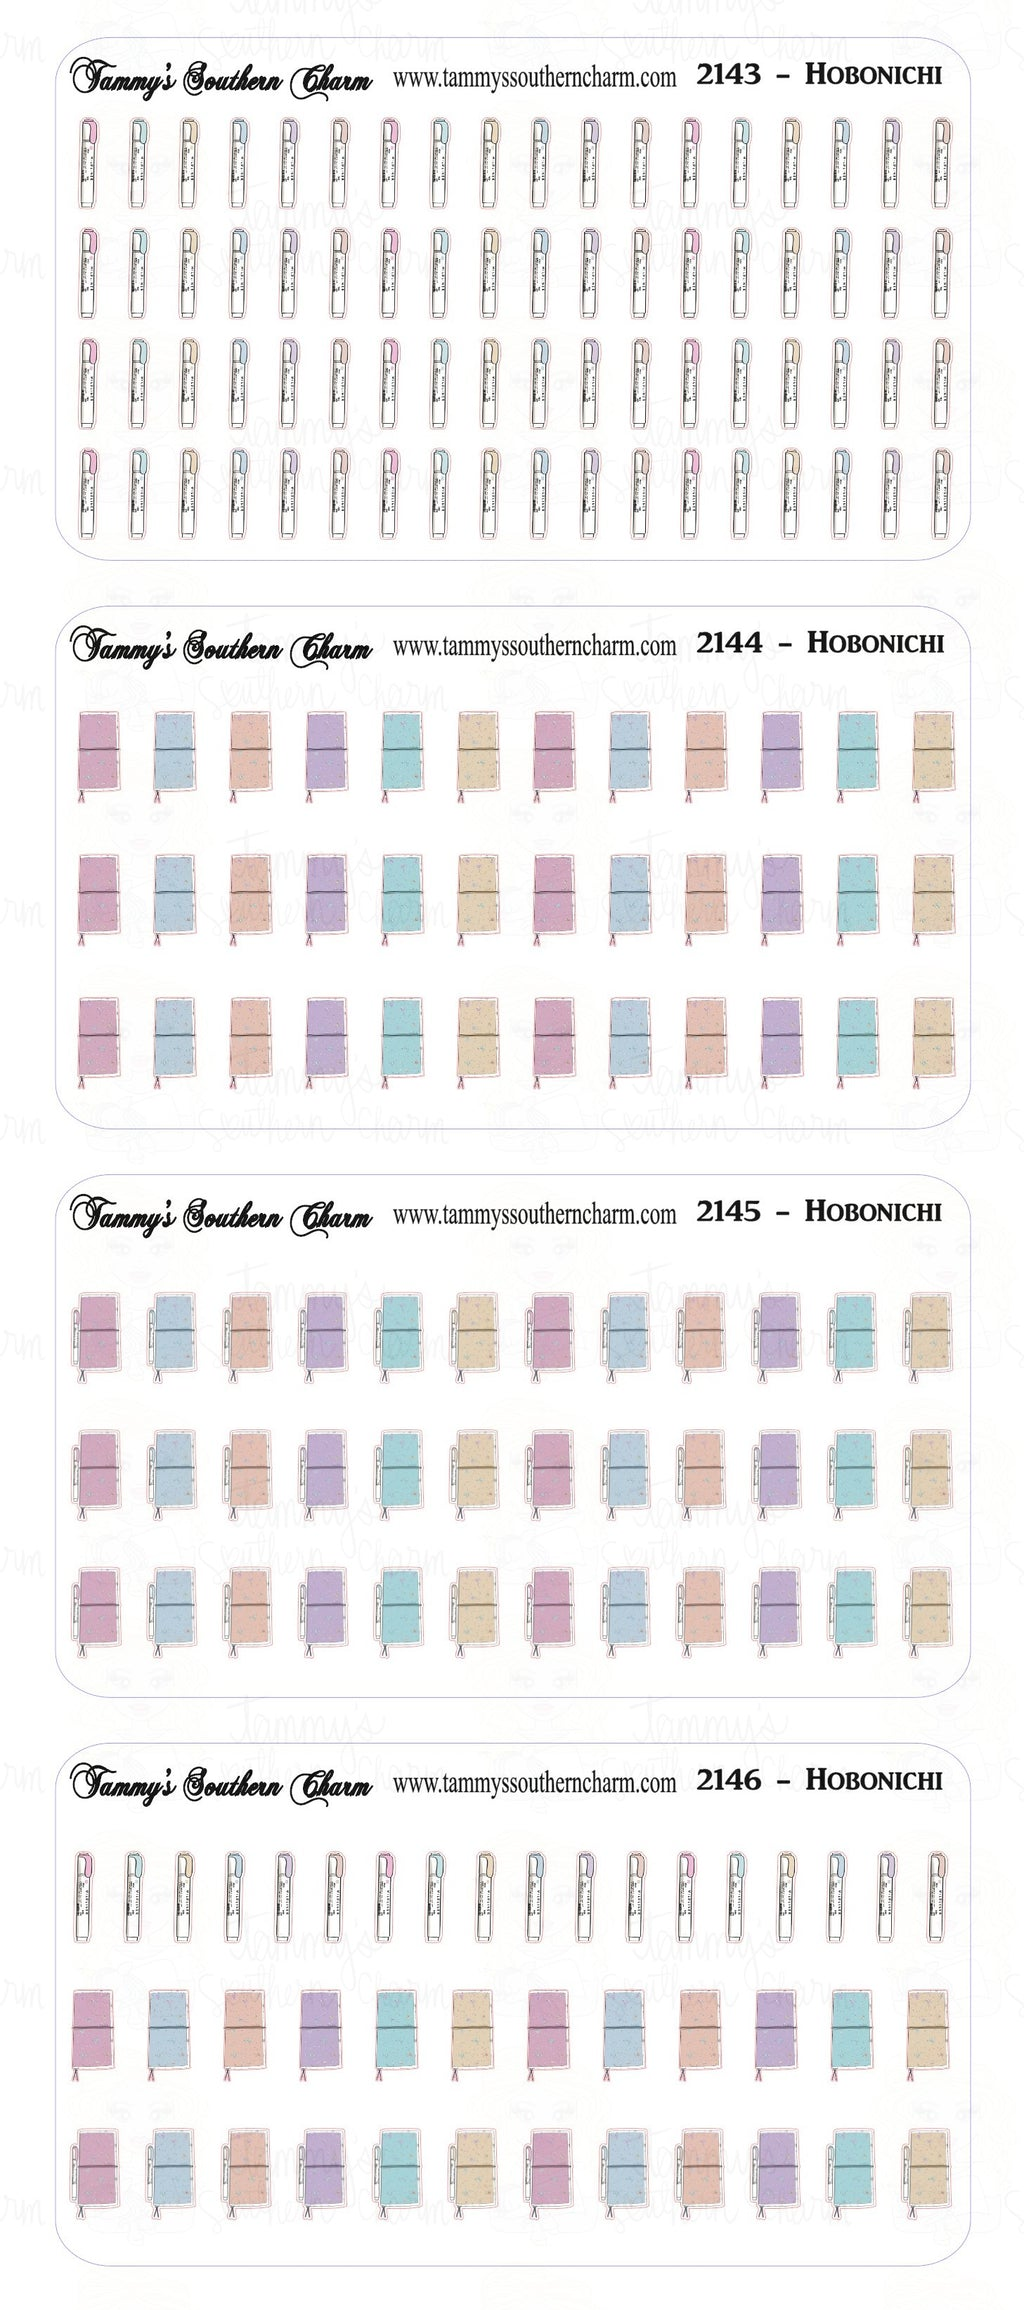 (2143 TO 2146) - MINI ICONS - HOBONICHI - CHOICE OF: SEE BELOW